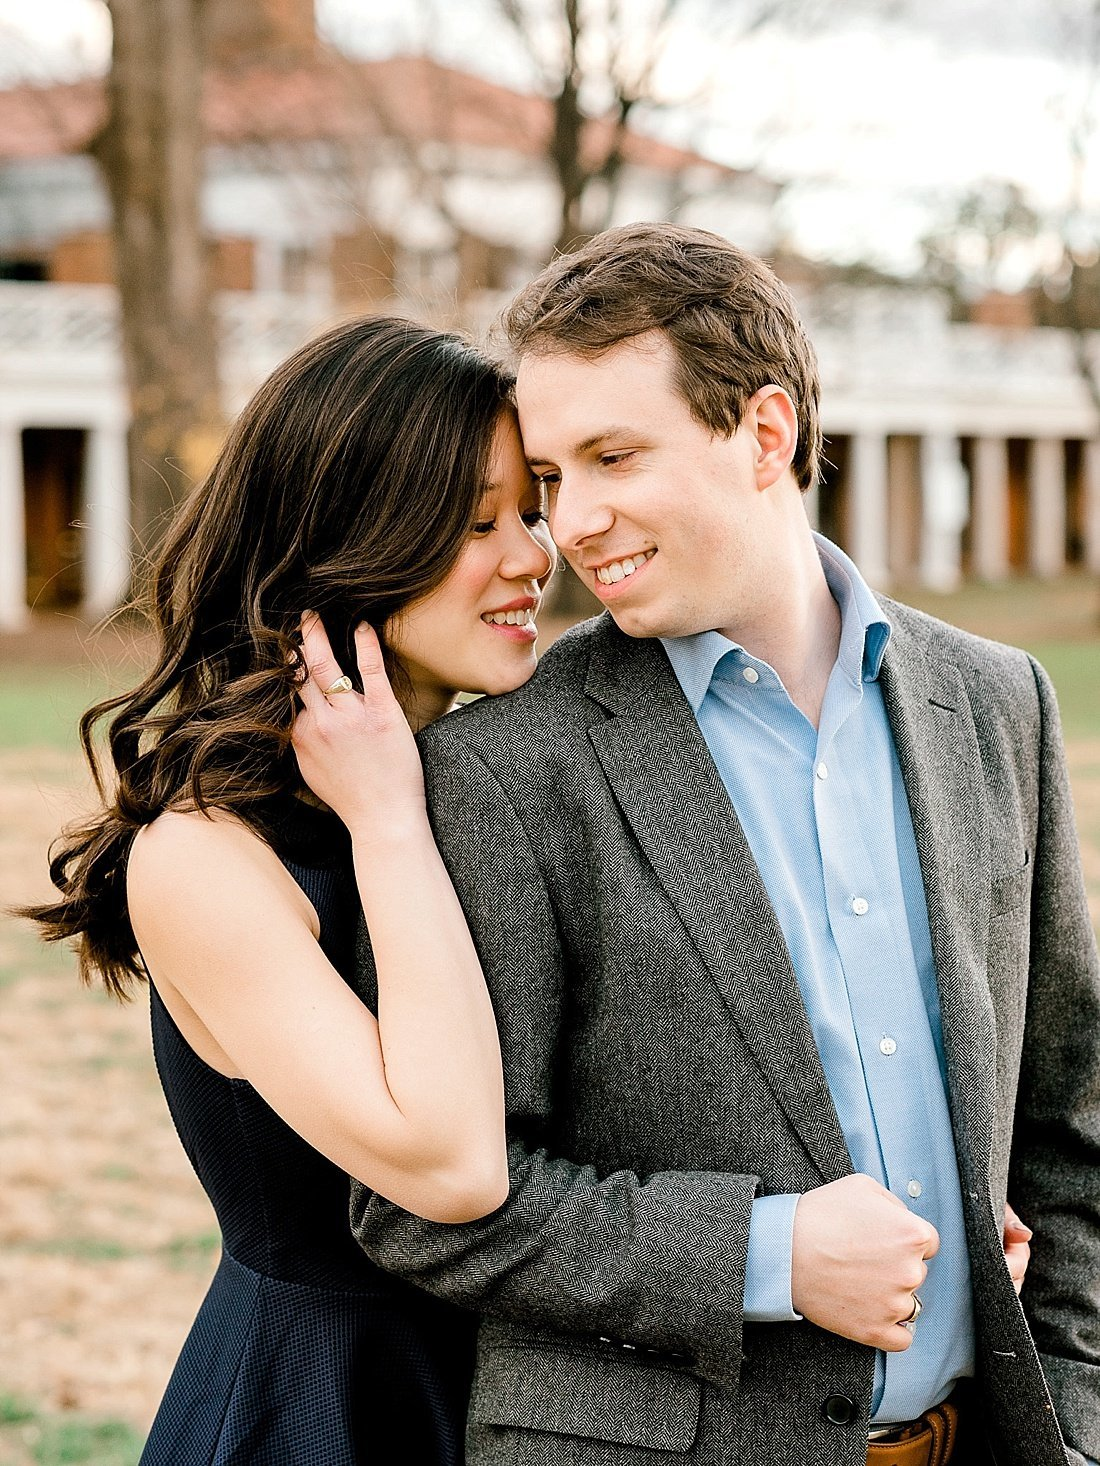 FACEBOOK-Monica and Justin Engagement Session-10